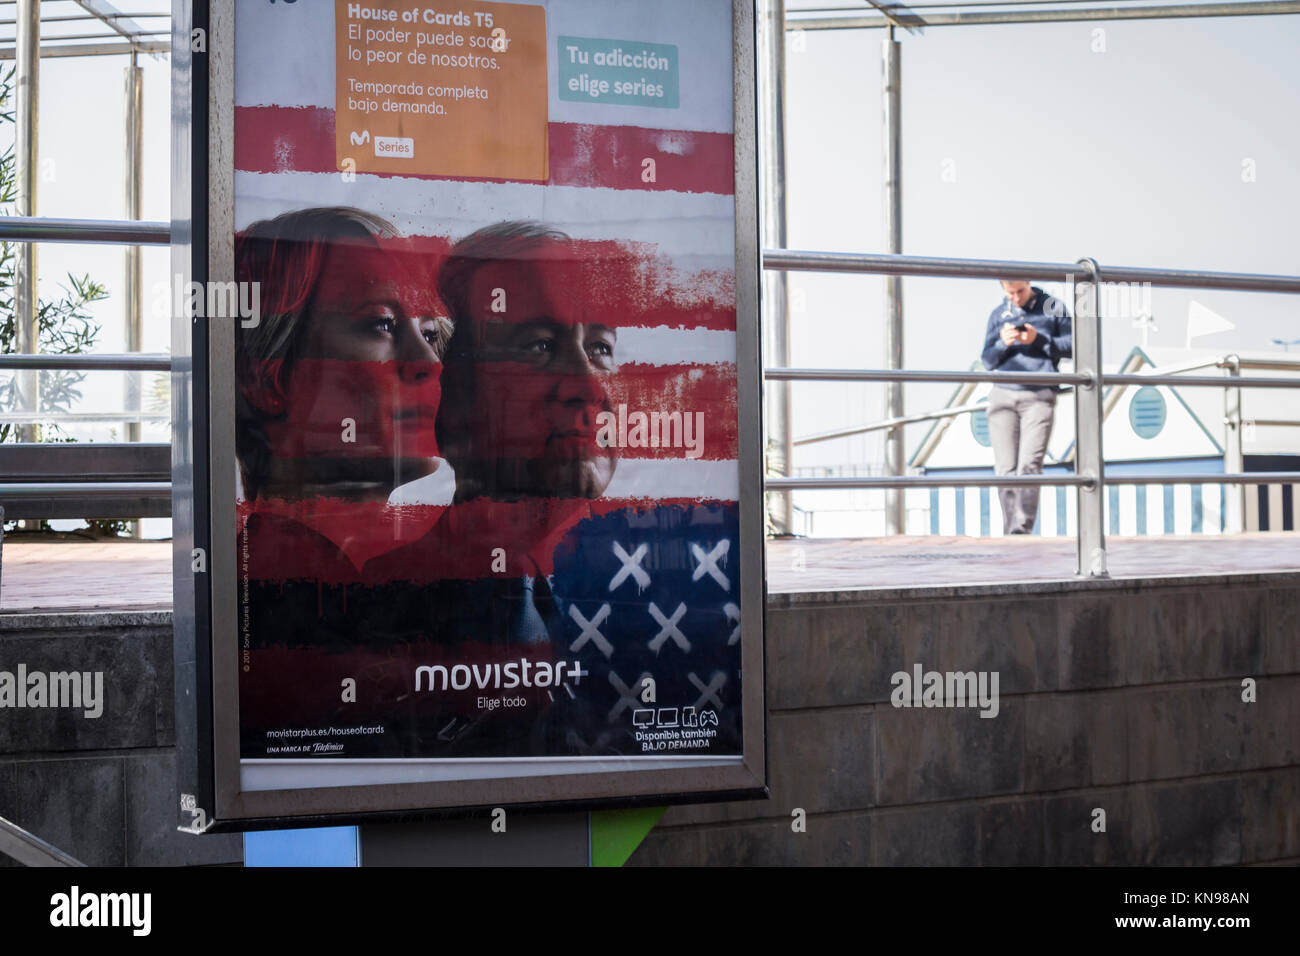 Image of Kevin Spacey promoting House of Cards on advertizing hoarding on telephone kiosk in Spain. - Stock Image